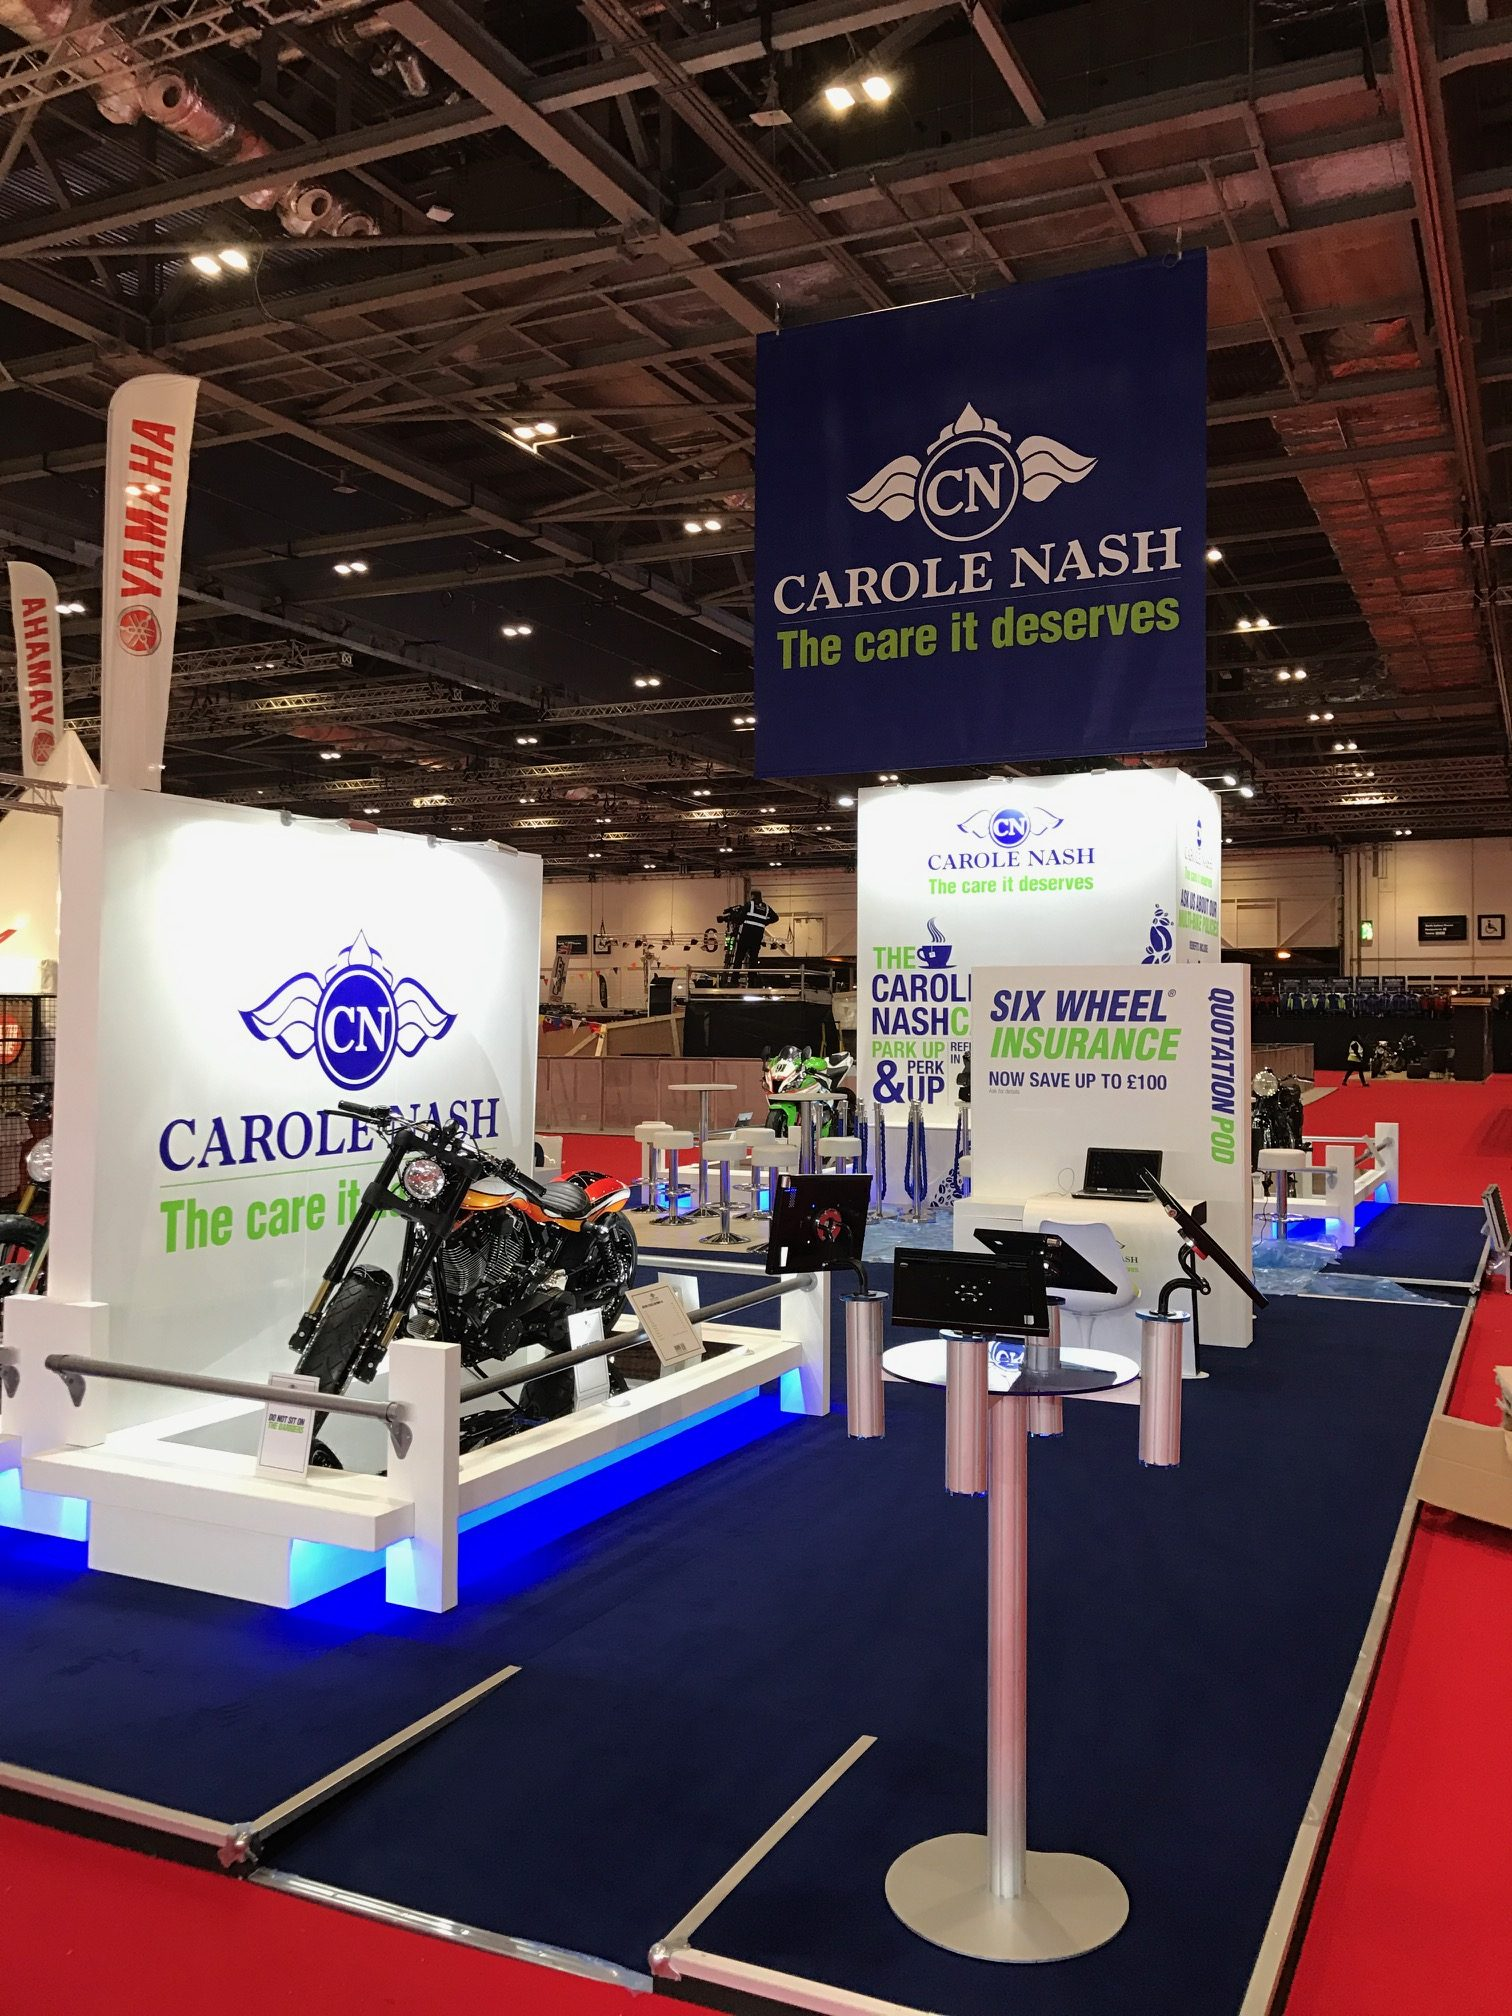 Bespoke exhibition stand for Carole Nash MCN London show, ExCel London, UK.